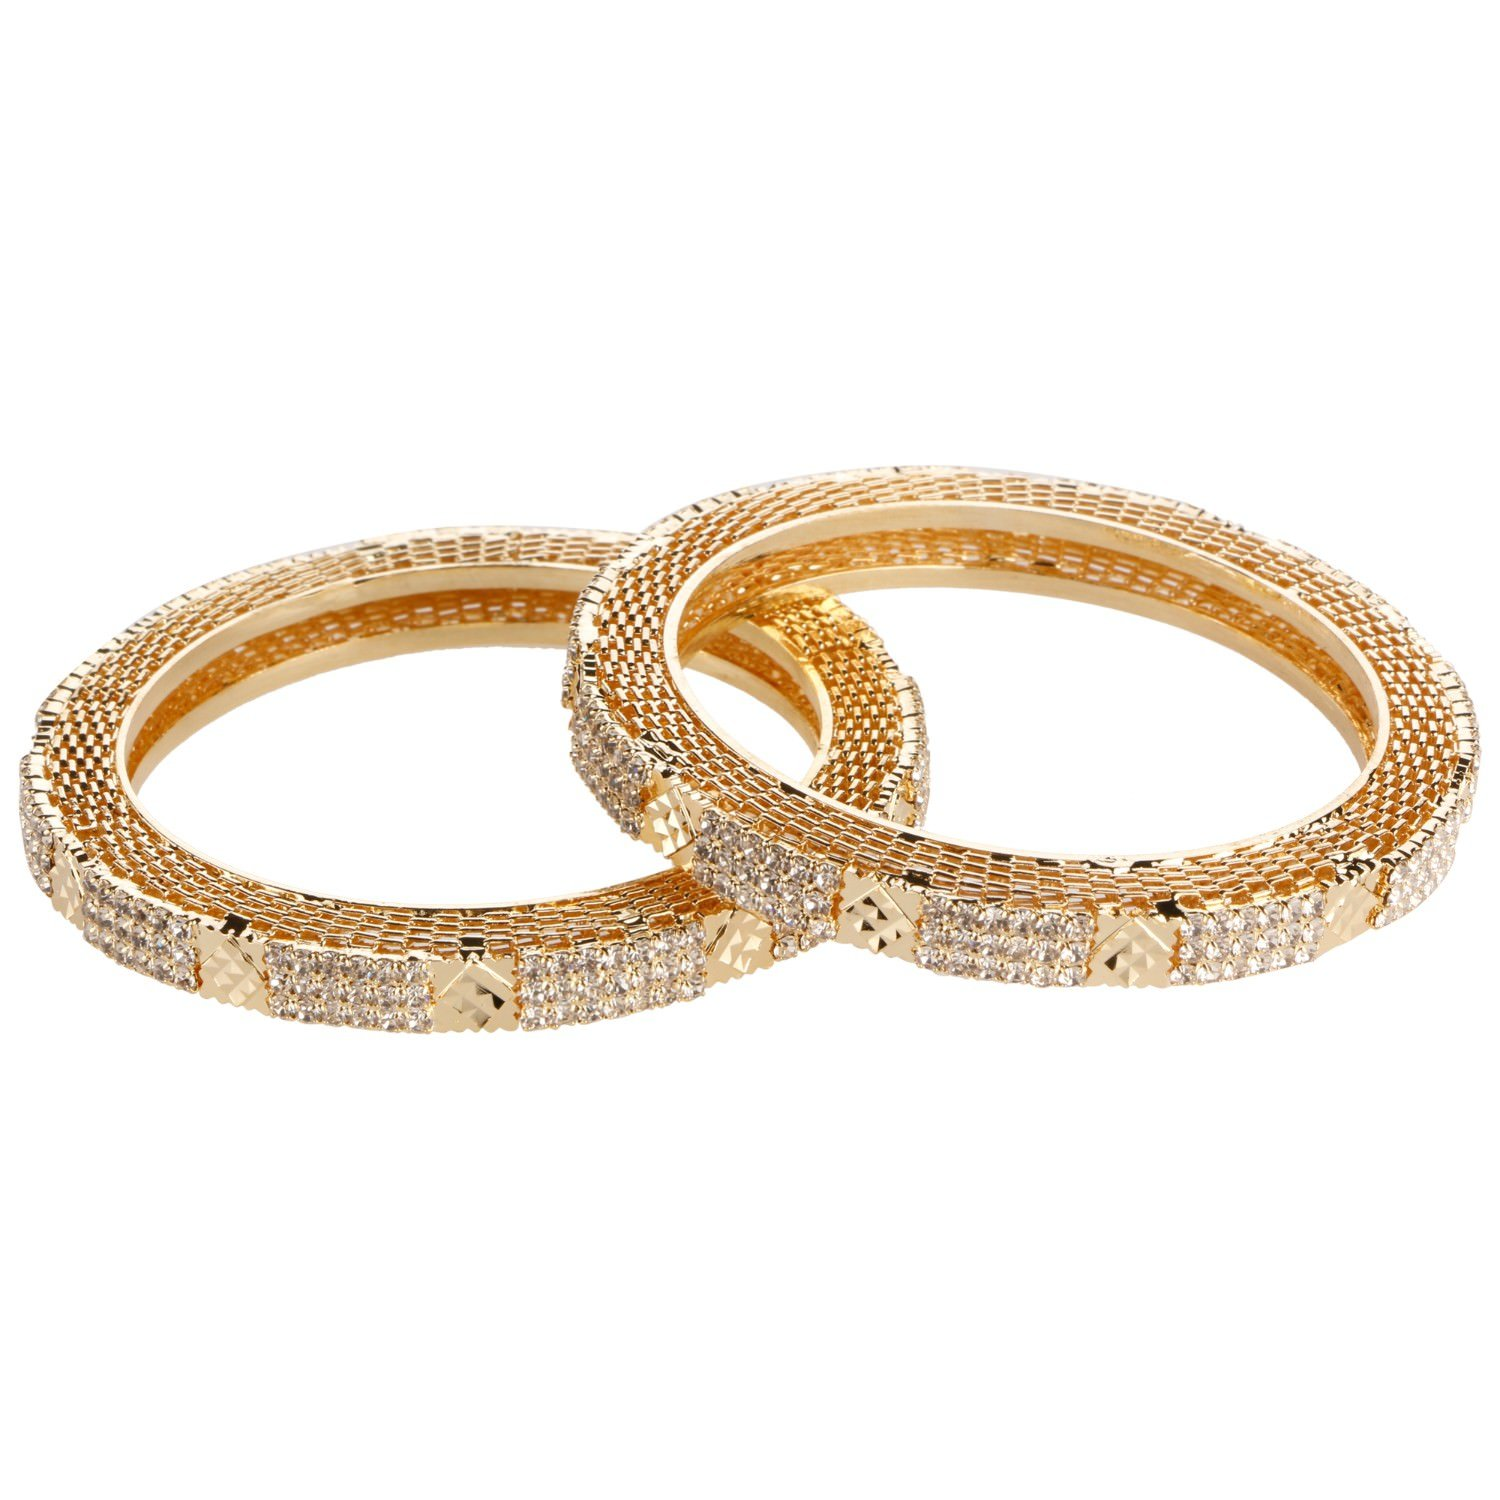 Efulgenz Fashion Jewelry Indian Bollywood 14 K Gold Plated Cubic Zirconia Bracelets Bangle Set (2 Pieces) For Women